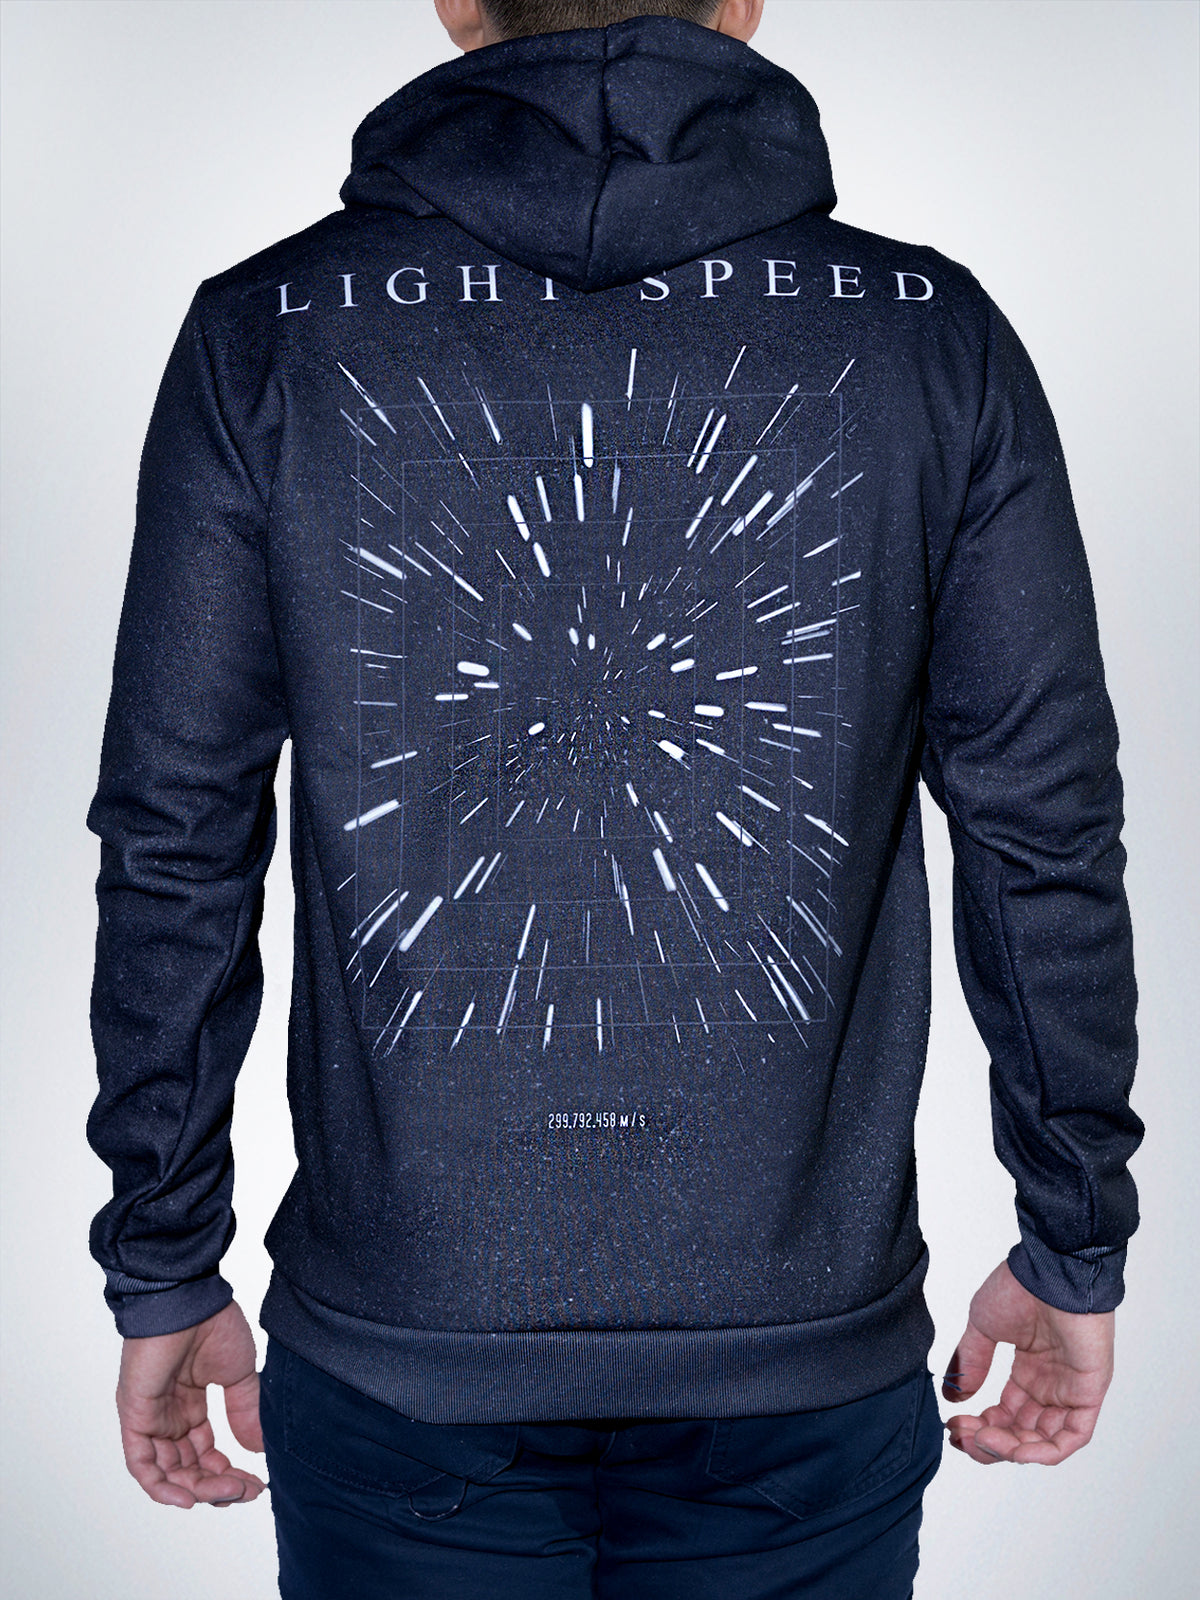 Light Speed Xclusive hoodies pullover sweater galaxy stars wars hyper space